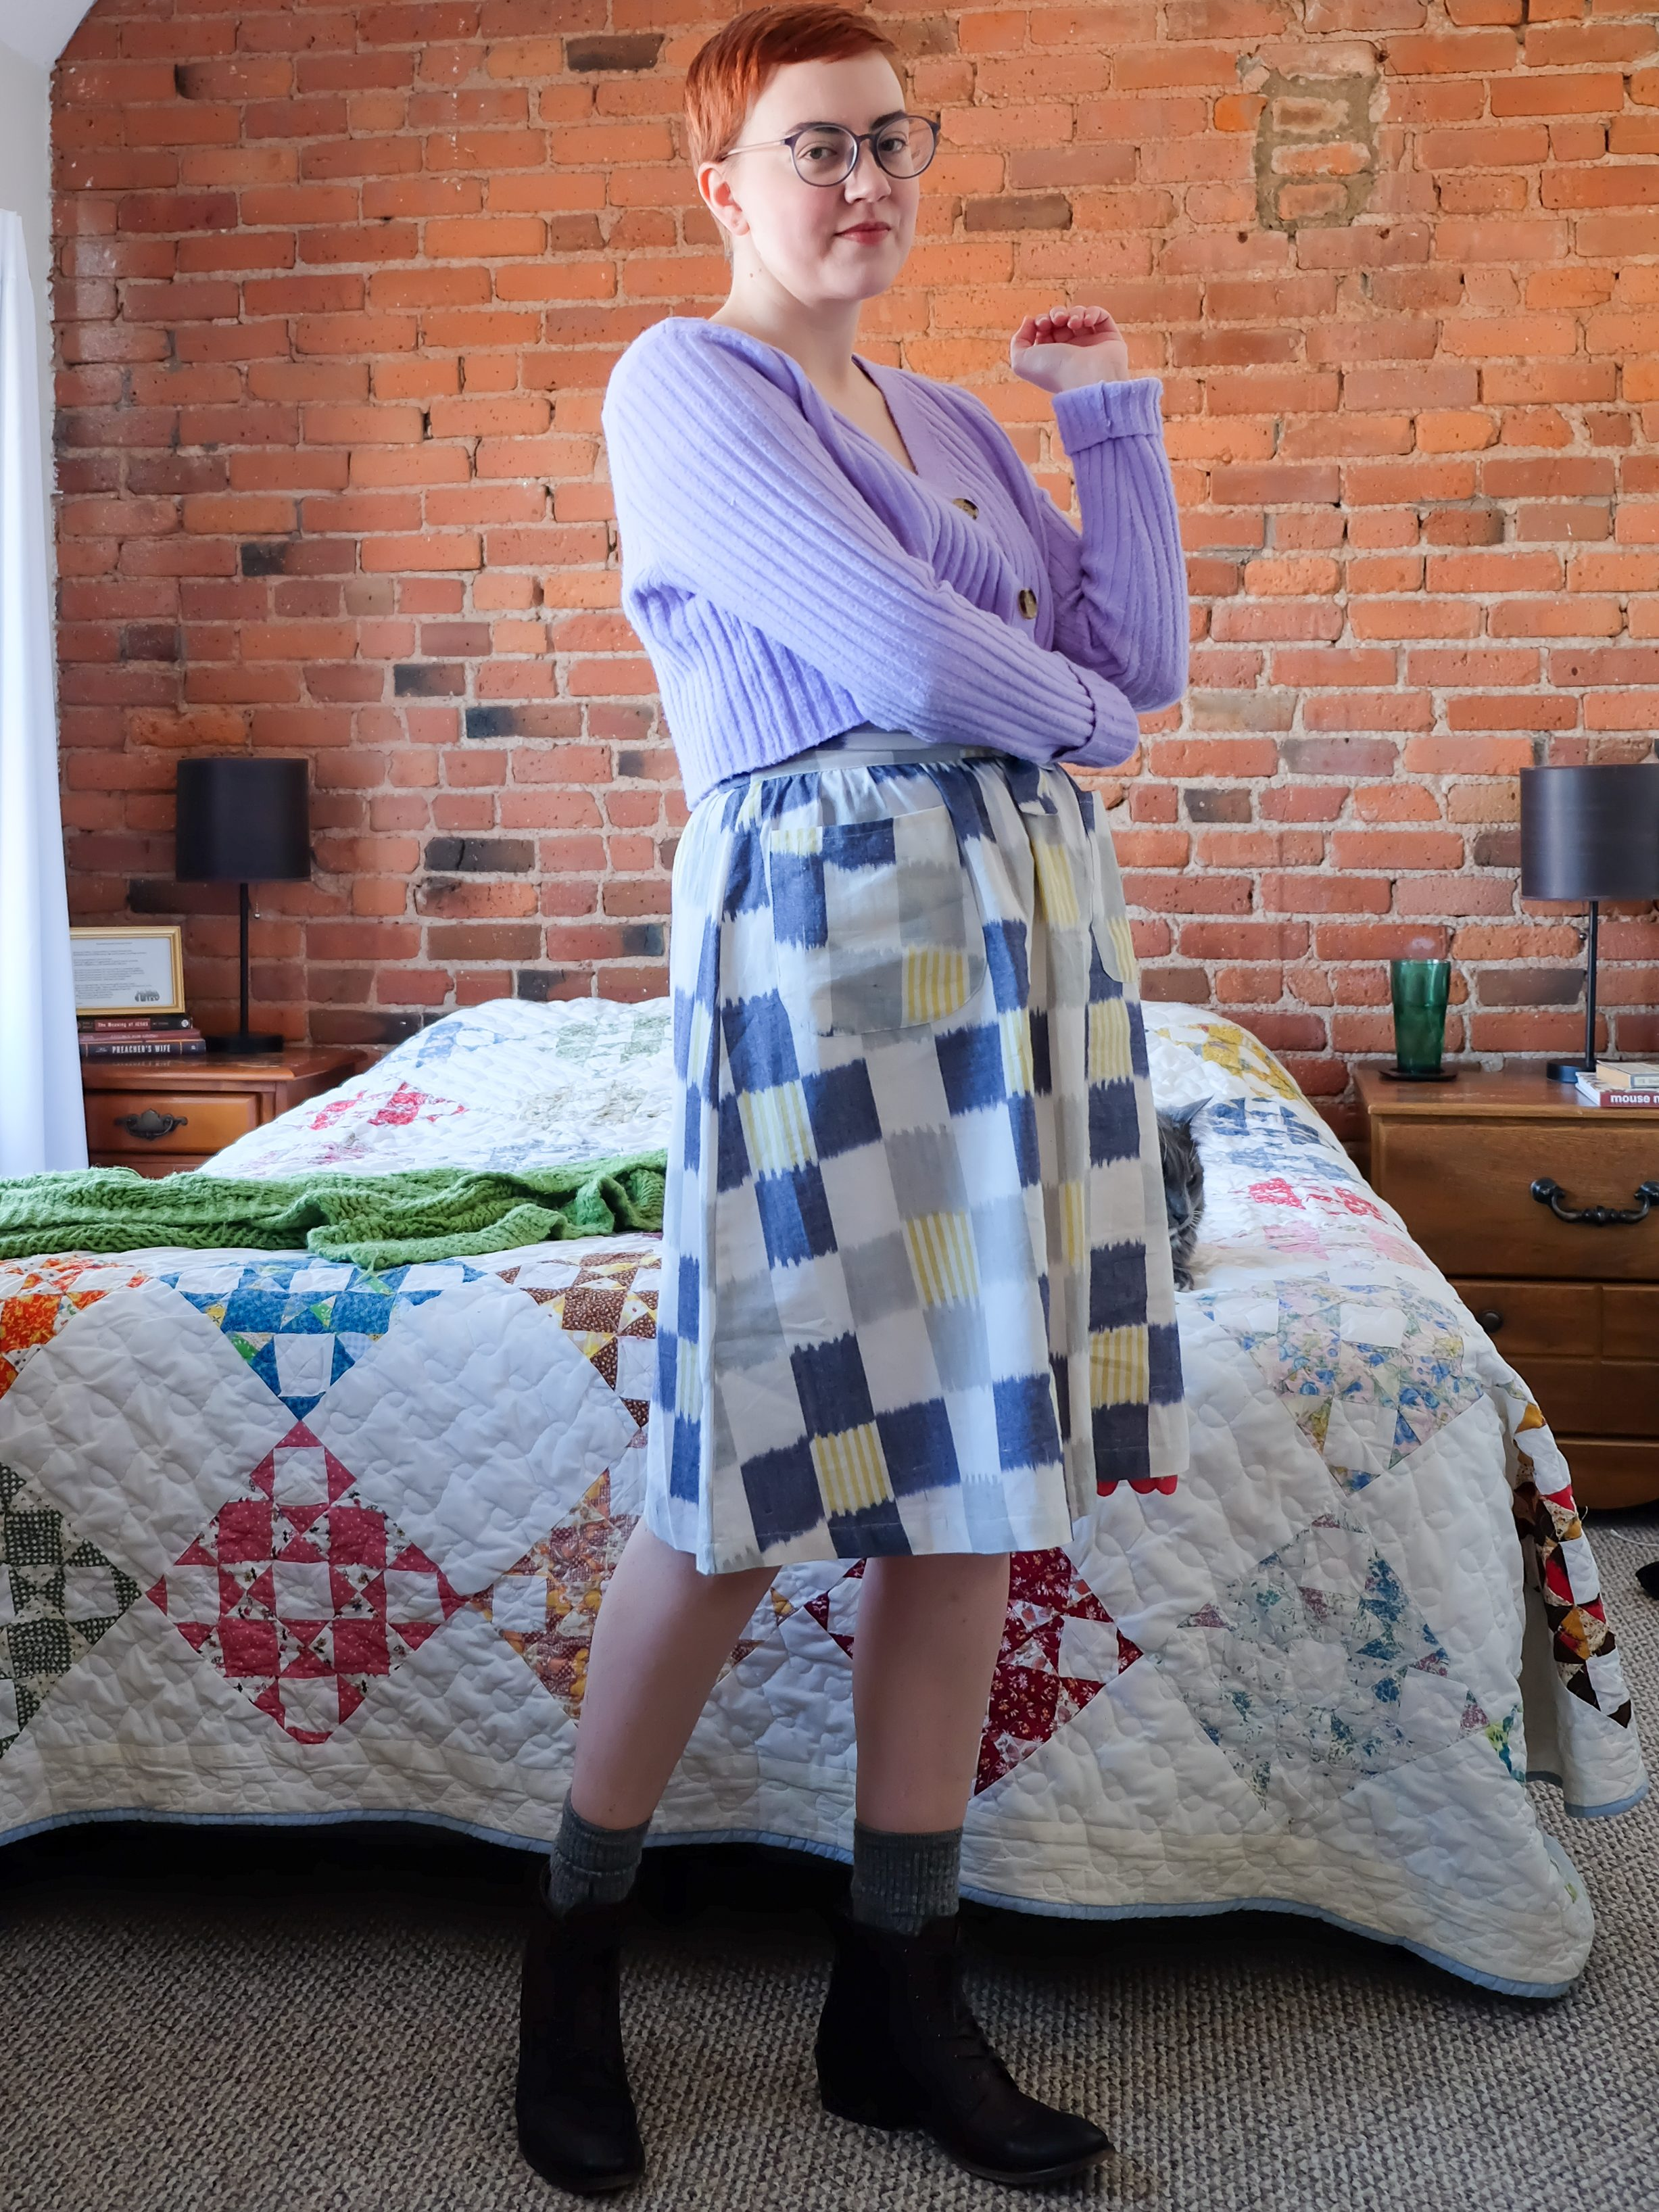 Sustainable Patterned Clothing - Passion Lilie plaid skirt - patchwork quilt skirt